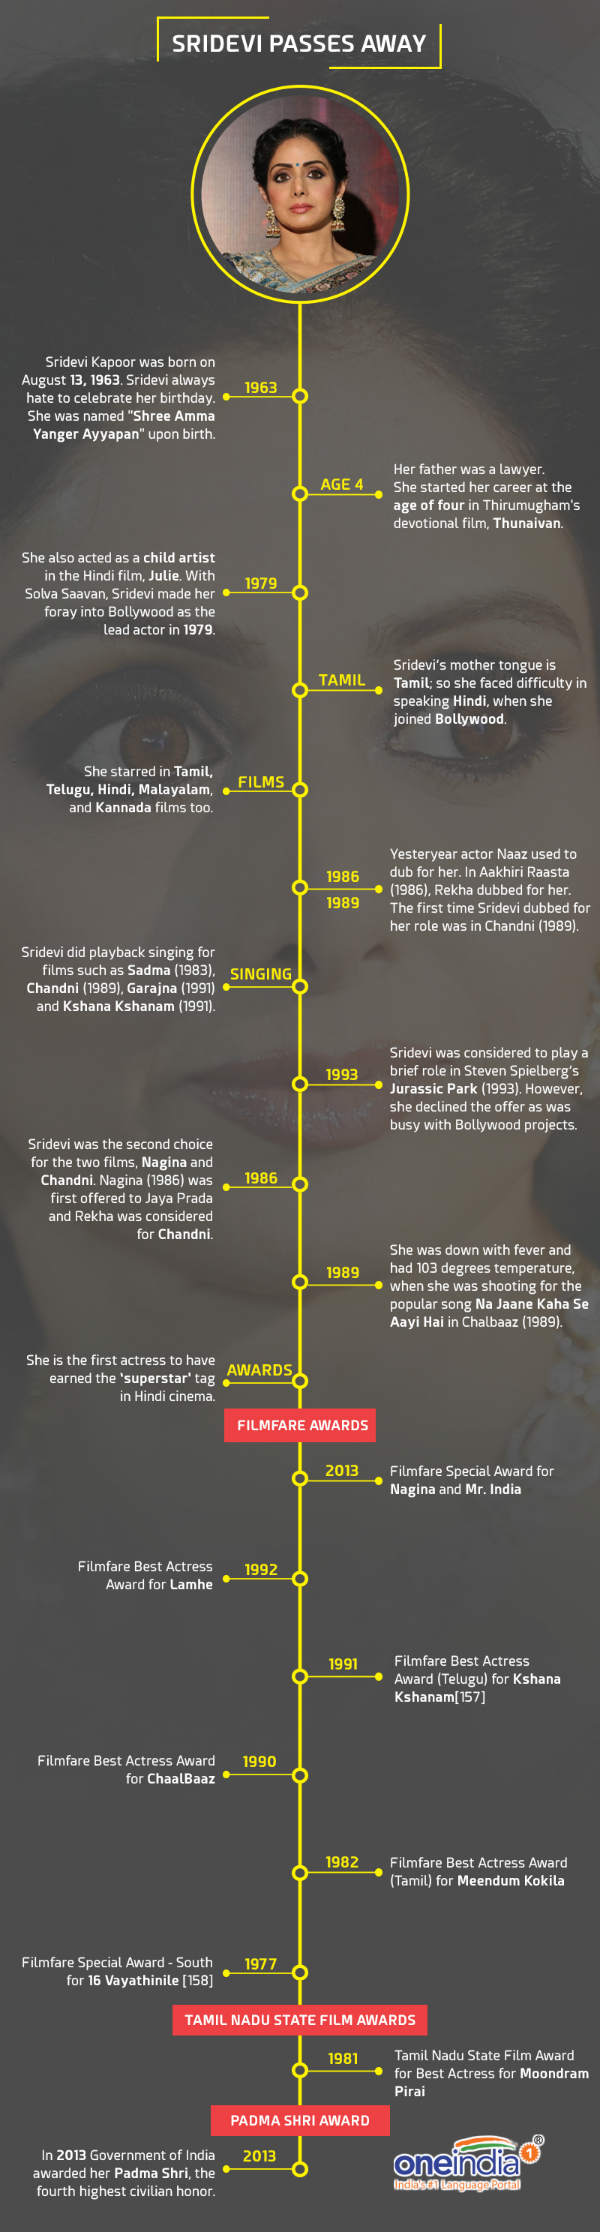 Some lesser known facts about Sridevi